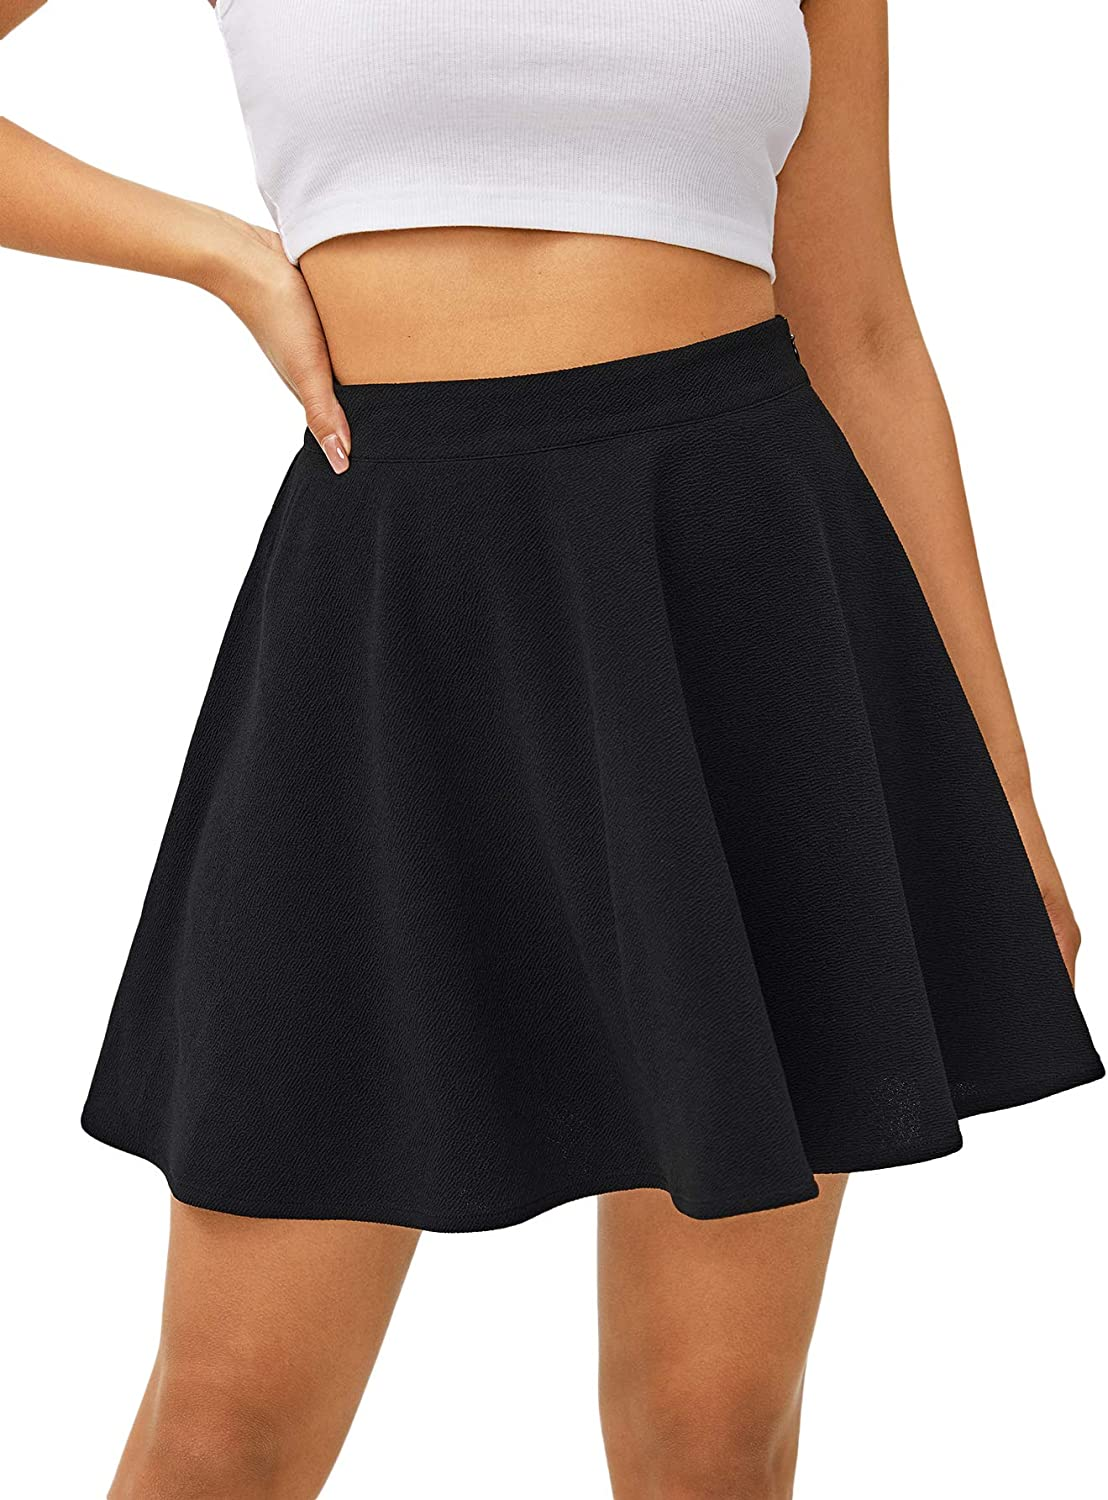 Milumia Women's High Waisted Zip up Casual Solid Flared Mini Skater Skirt